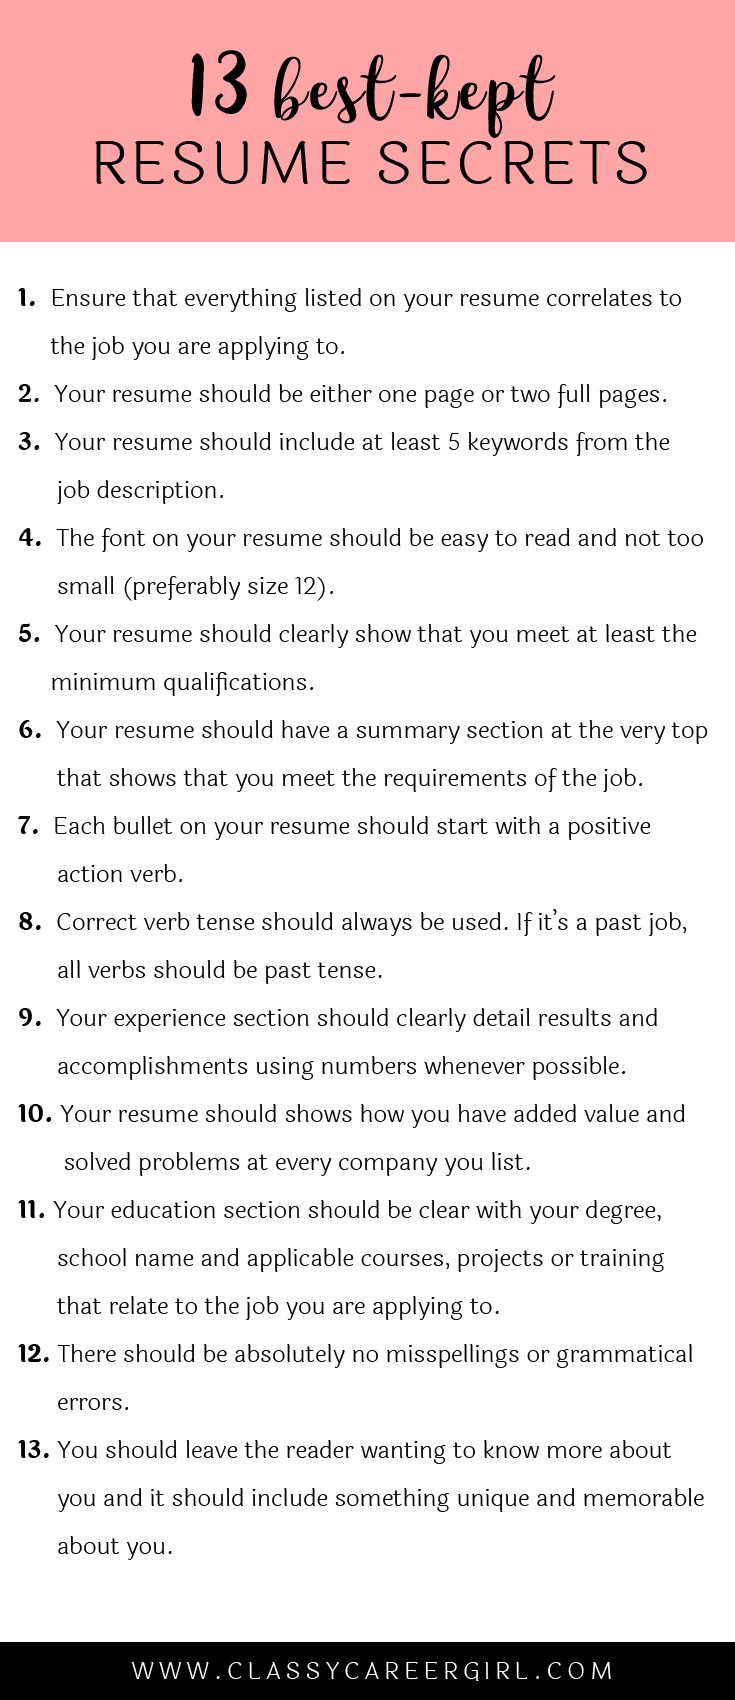 Opposenewapstandardsus  Personable  Ideas About Resume On Pinterest  Cv Format Resume Cv And  With Heavenly Some Hiring Managers Will Toss Your Resume Out If You Dont Know These  With Amusing Phi Beta Kappa Resume Also Disney College Program Resume In Addition Human Resource Resume Sample And Entry Level Analyst Resume As Well As Bank Teller Duties Resume Additionally Good Qualities To Put On Resume From Pinterestcom With Opposenewapstandardsus  Heavenly  Ideas About Resume On Pinterest  Cv Format Resume Cv And  With Amusing Some Hiring Managers Will Toss Your Resume Out If You Dont Know These  And Personable Phi Beta Kappa Resume Also Disney College Program Resume In Addition Human Resource Resume Sample From Pinterestcom